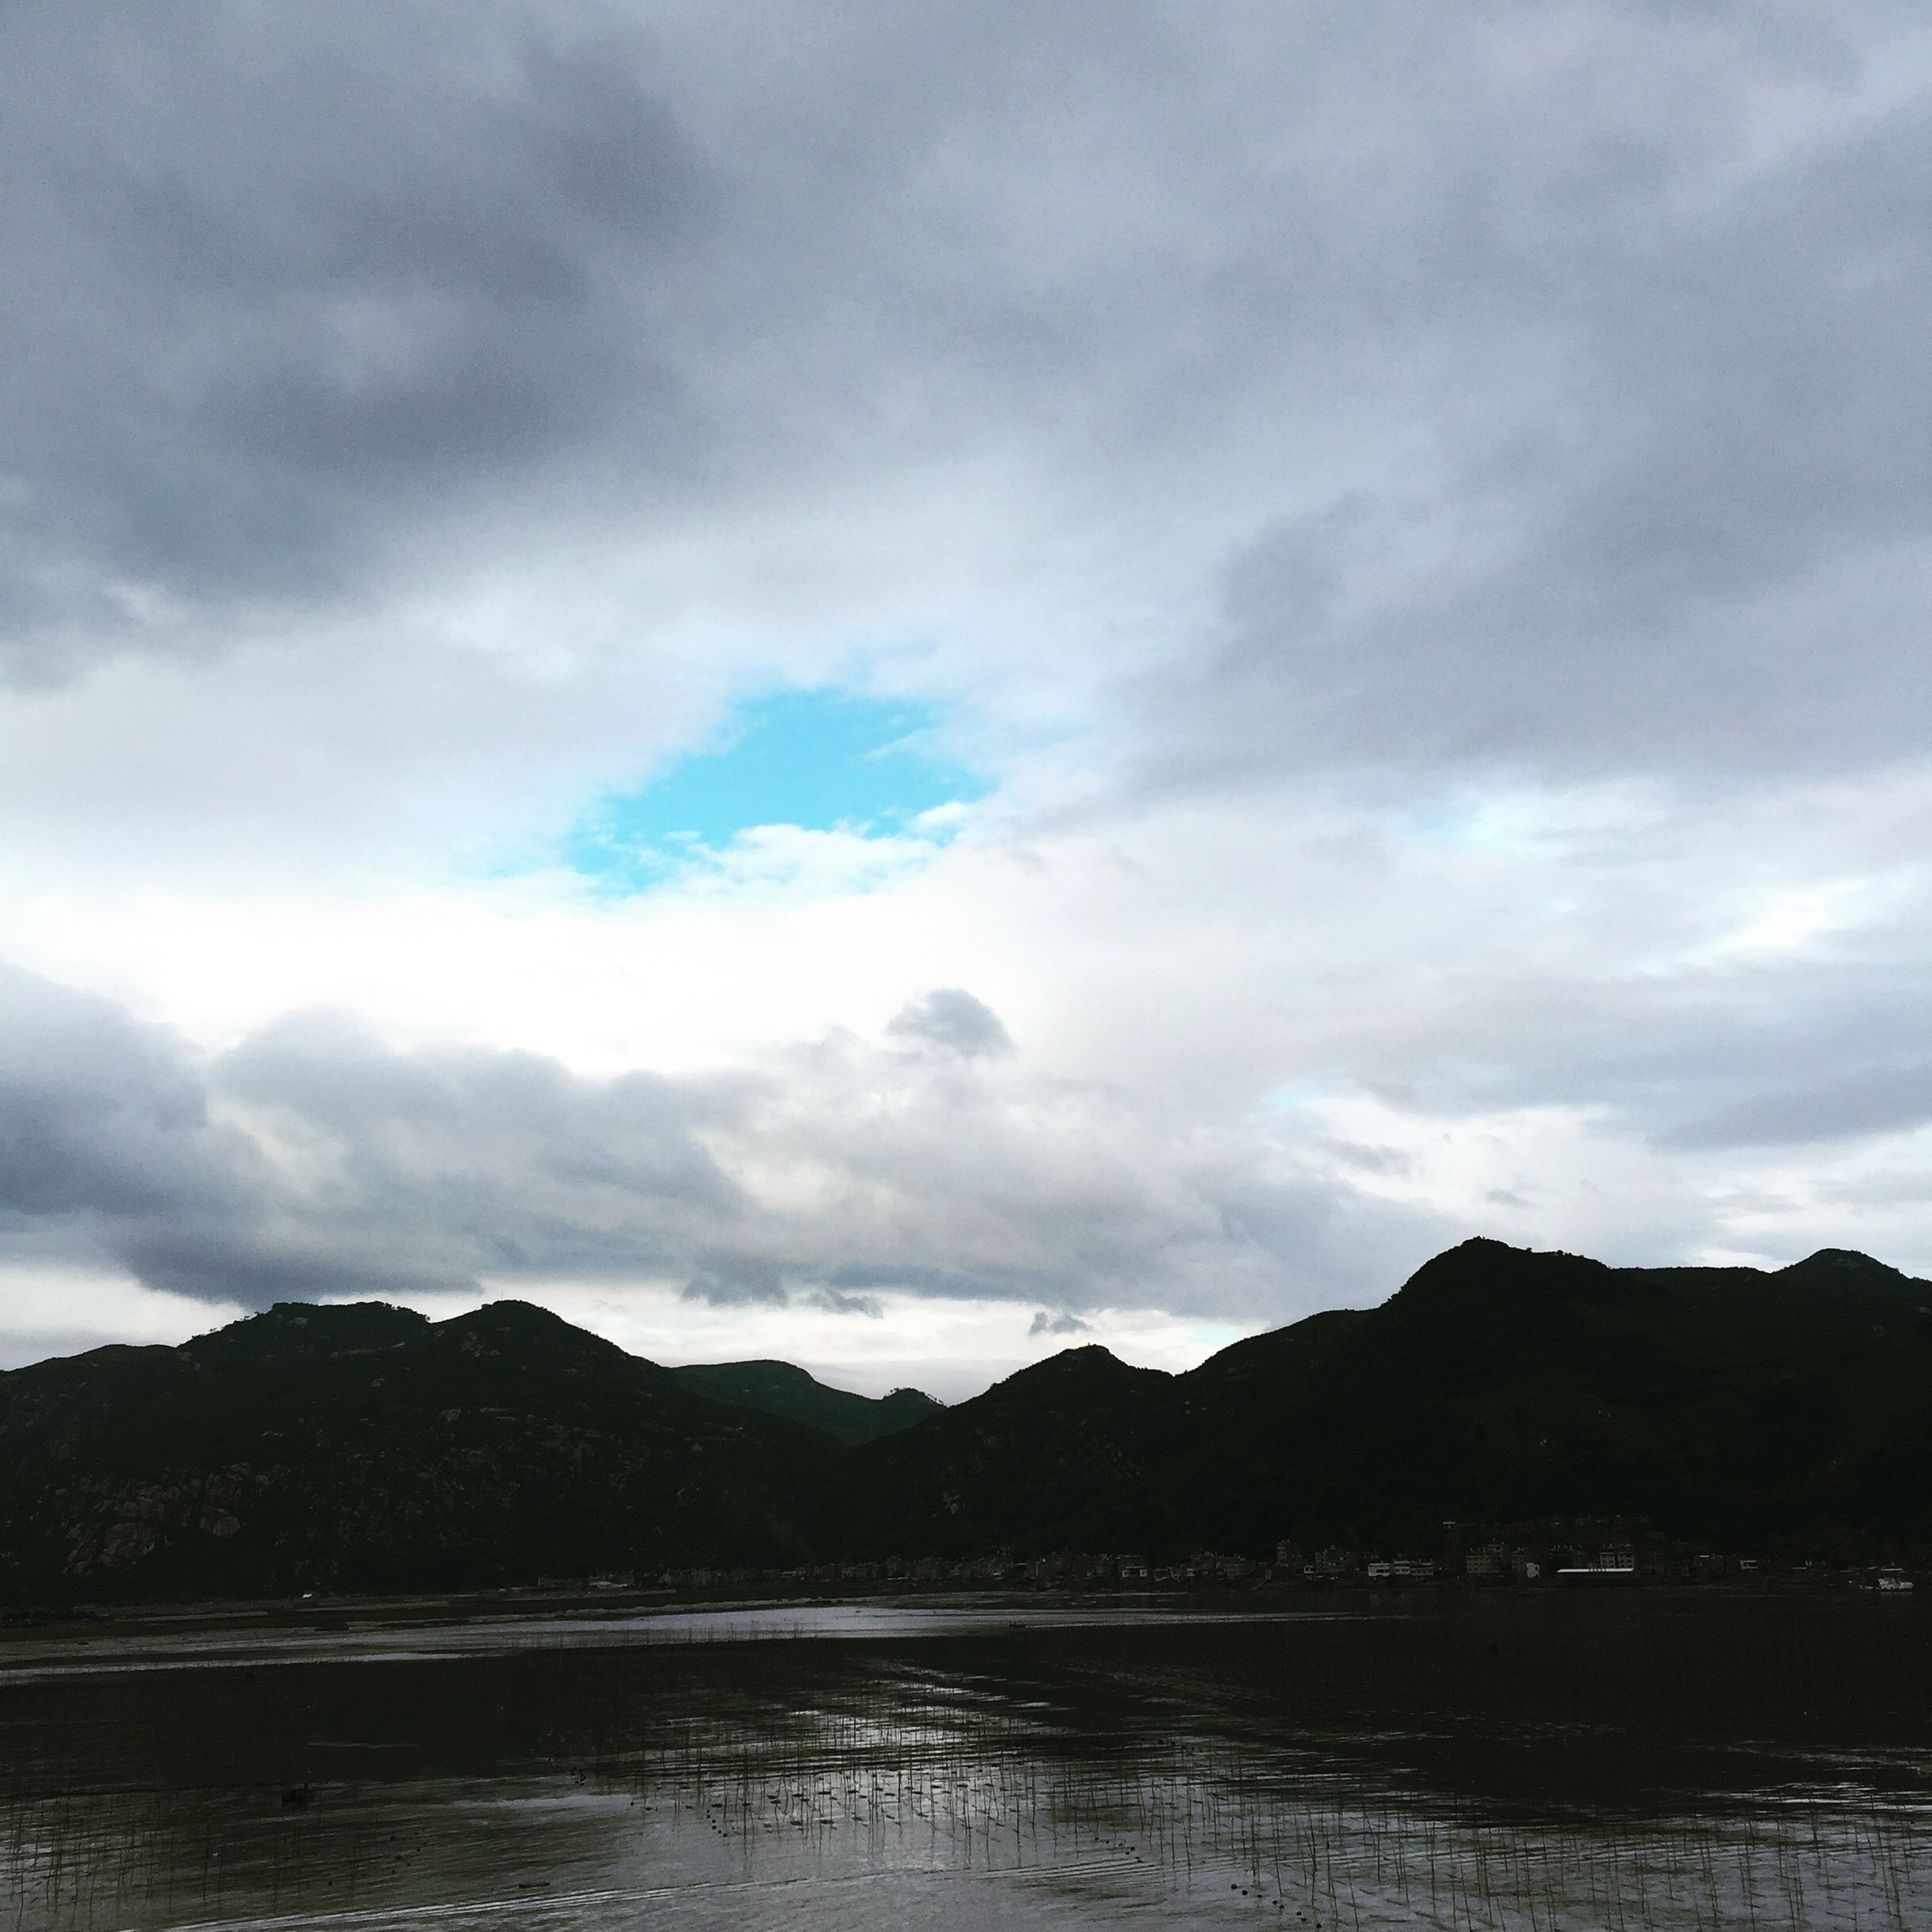 mountain, mountain range, water, sky, tranquil scene, scenics, tranquility, waterfront, beauty in nature, cloud - sky, lake, nature, cloudy, cloud, idyllic, river, reflection, non-urban scene, outdoors, day